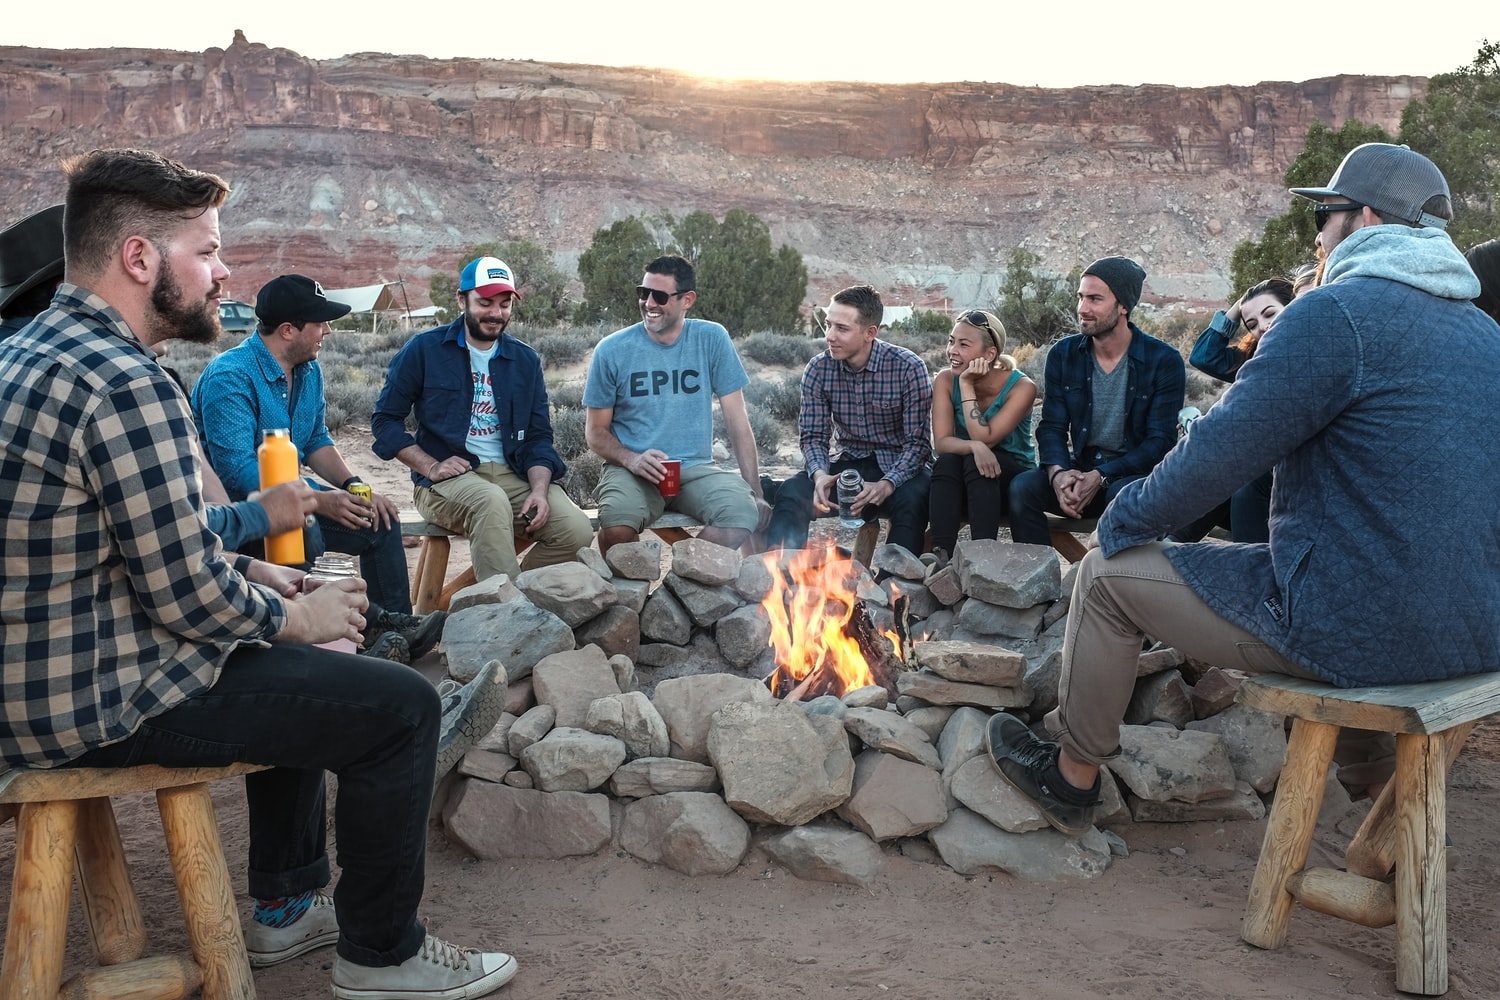 People are having fun talking with each other while having a campfire at the center of them